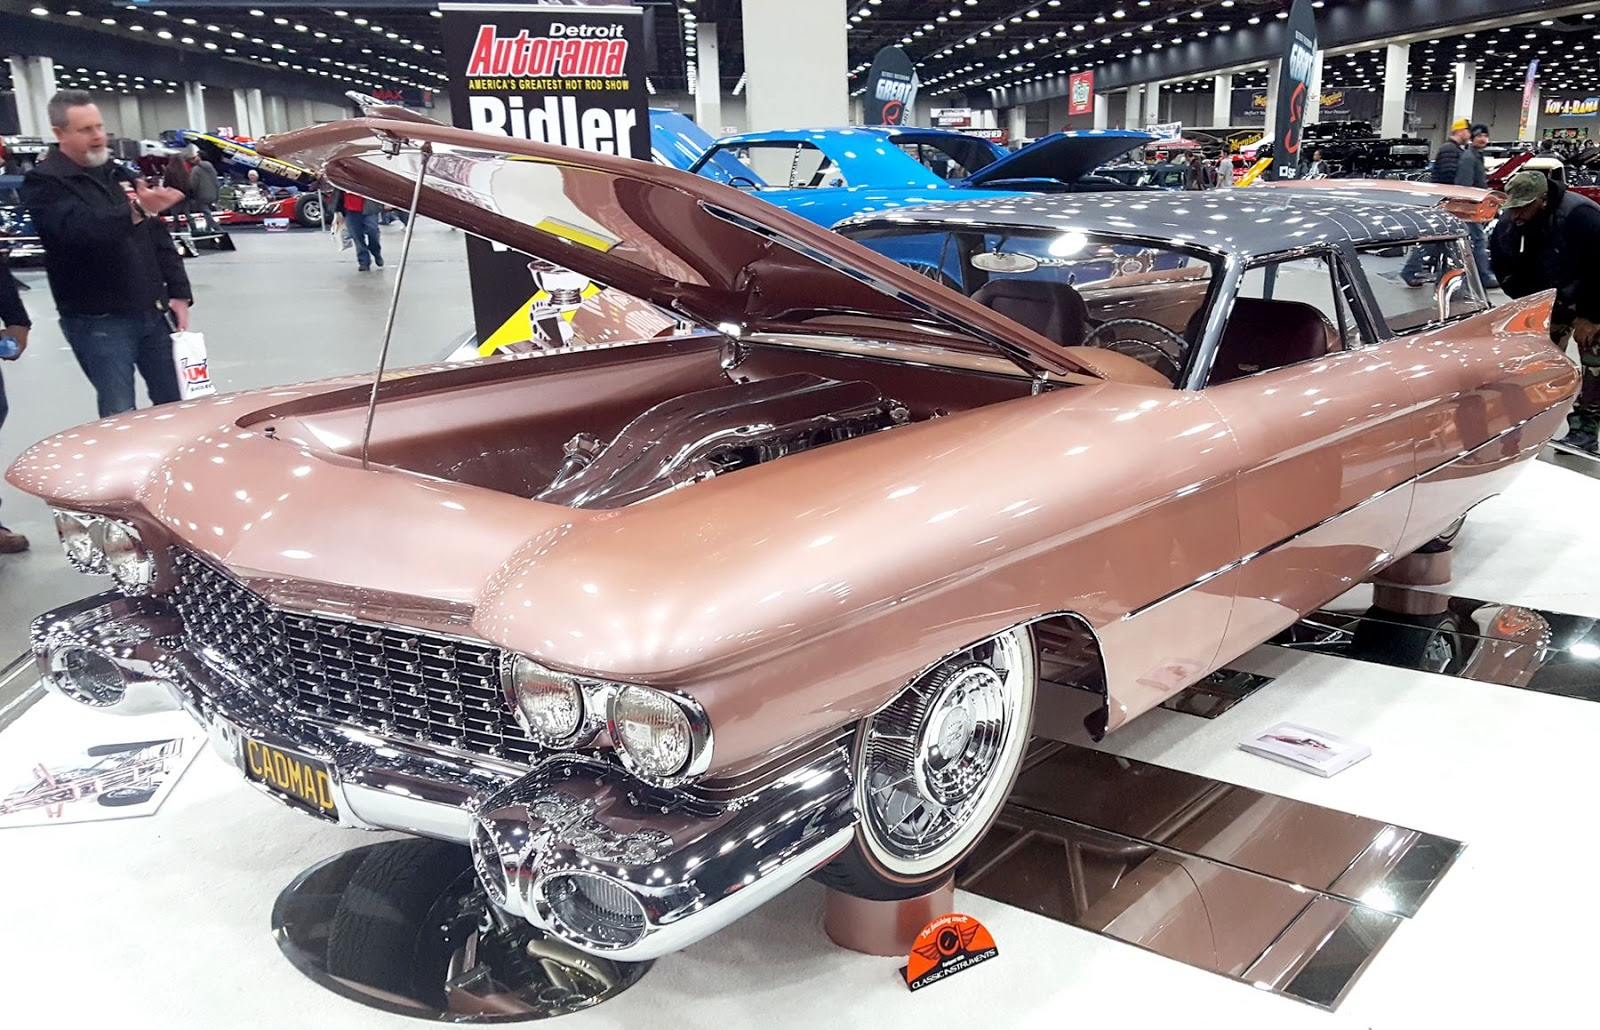 f6c3a30a7b2 Built by Super Rides by Jordan in Escondido, California, the starting point  was a 1959 Cadillac Eldorado Brougham, a no-expense-spared luxury sedan  with a ...